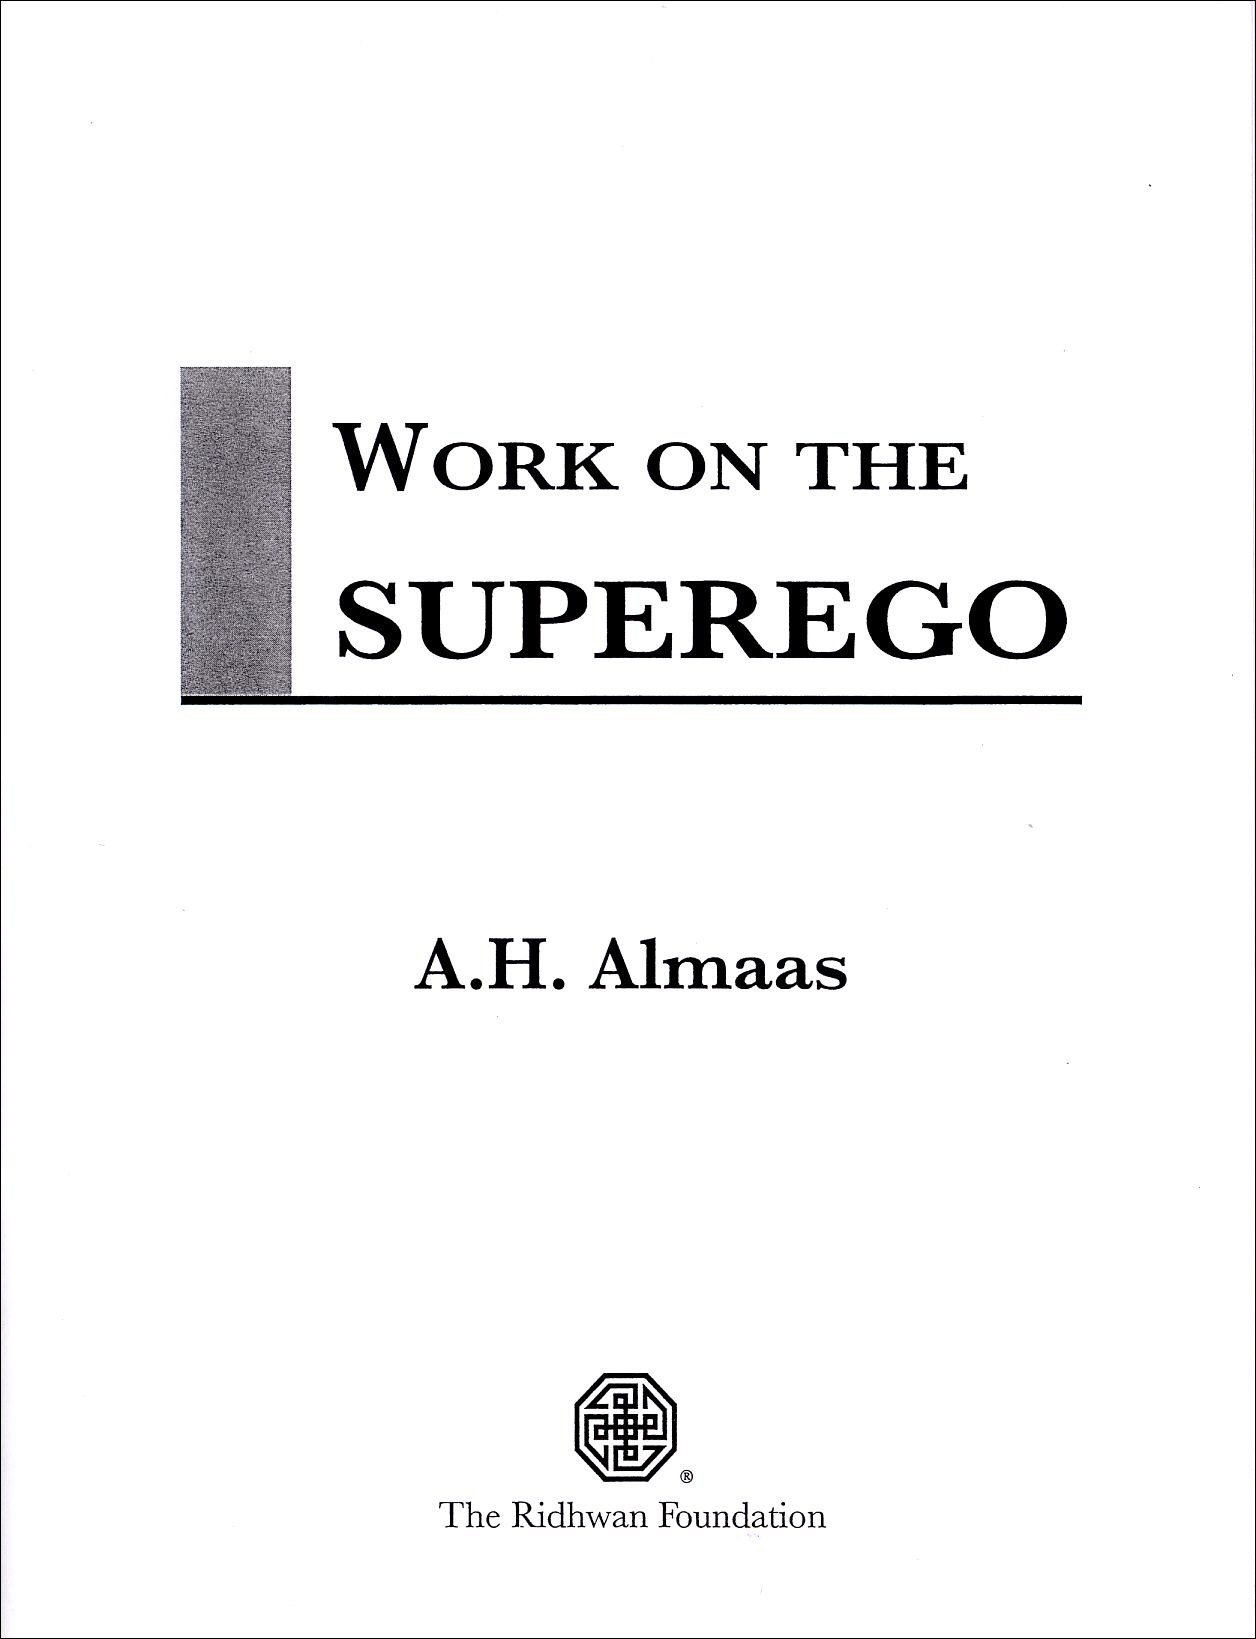 Work on the Superego